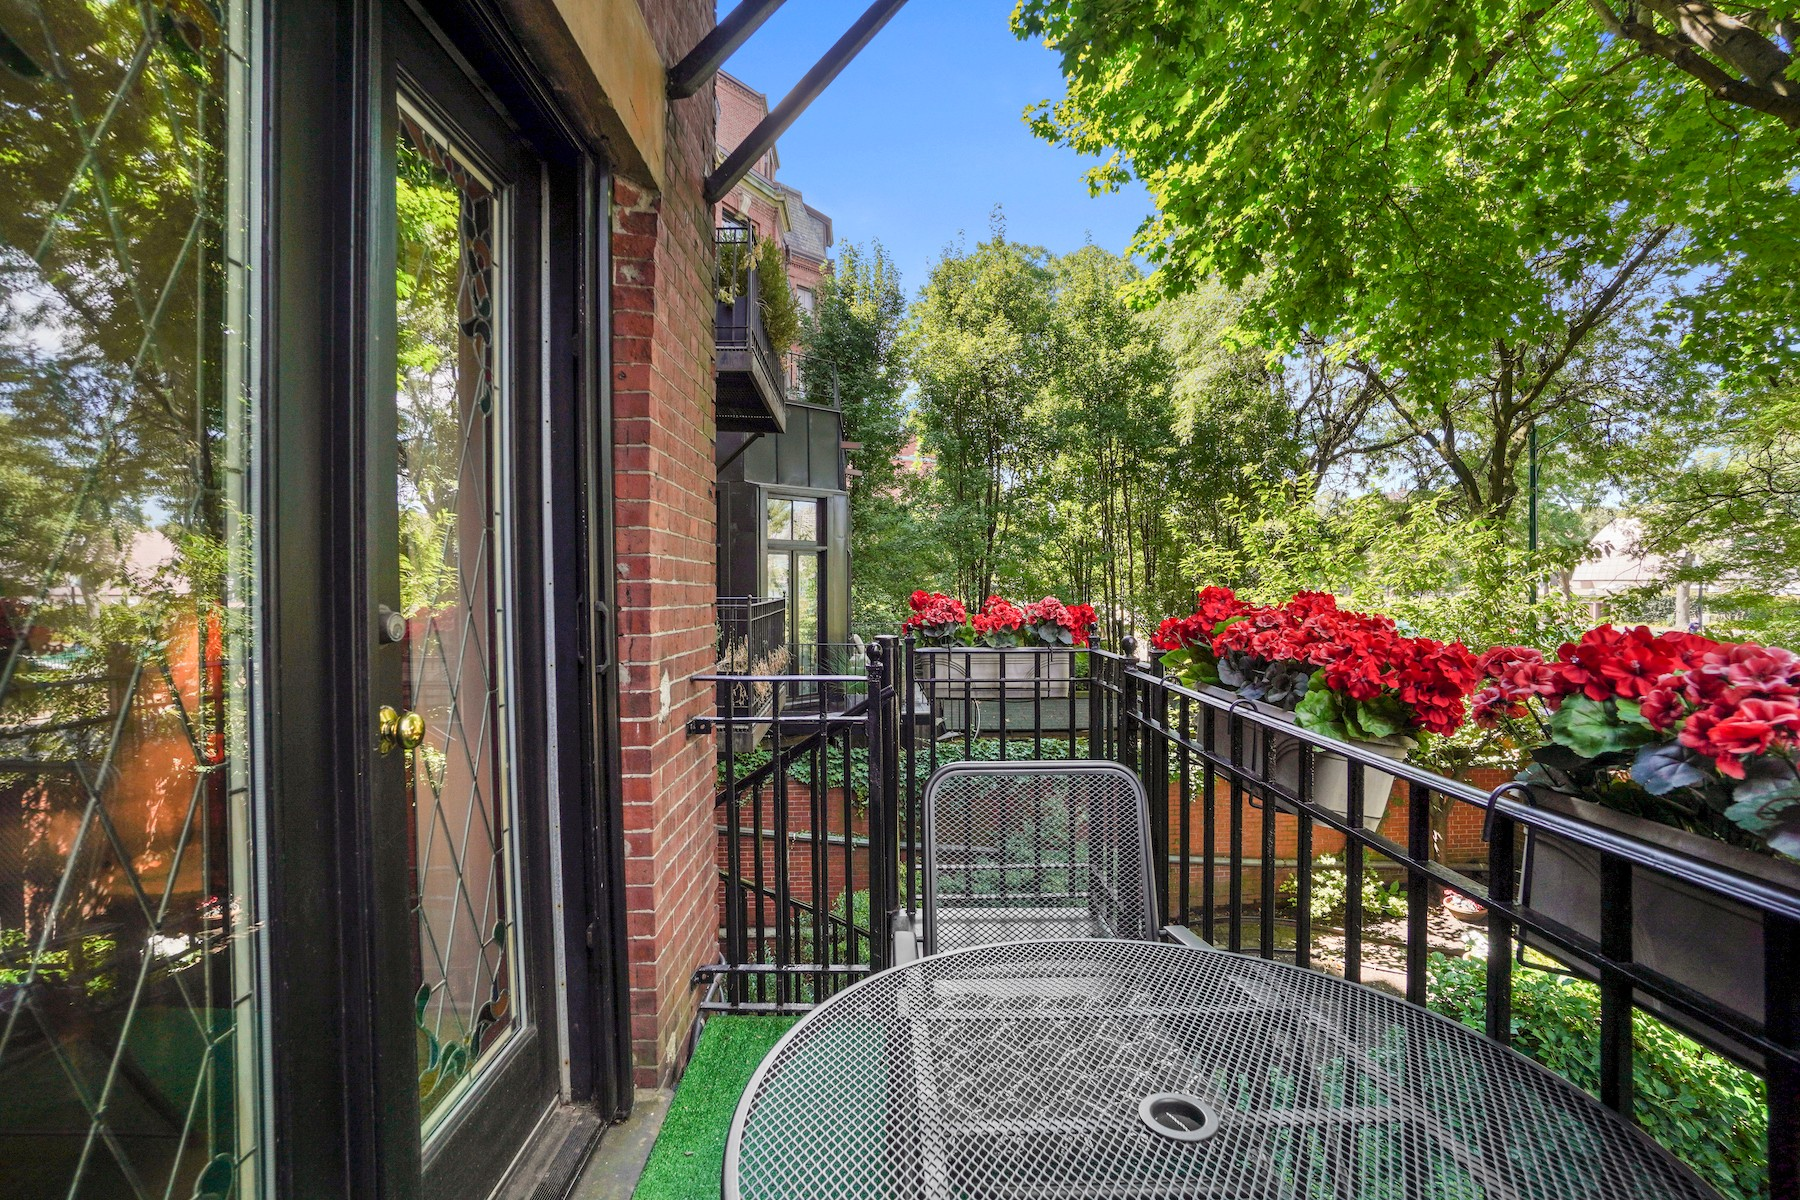 Patio and fence with city views